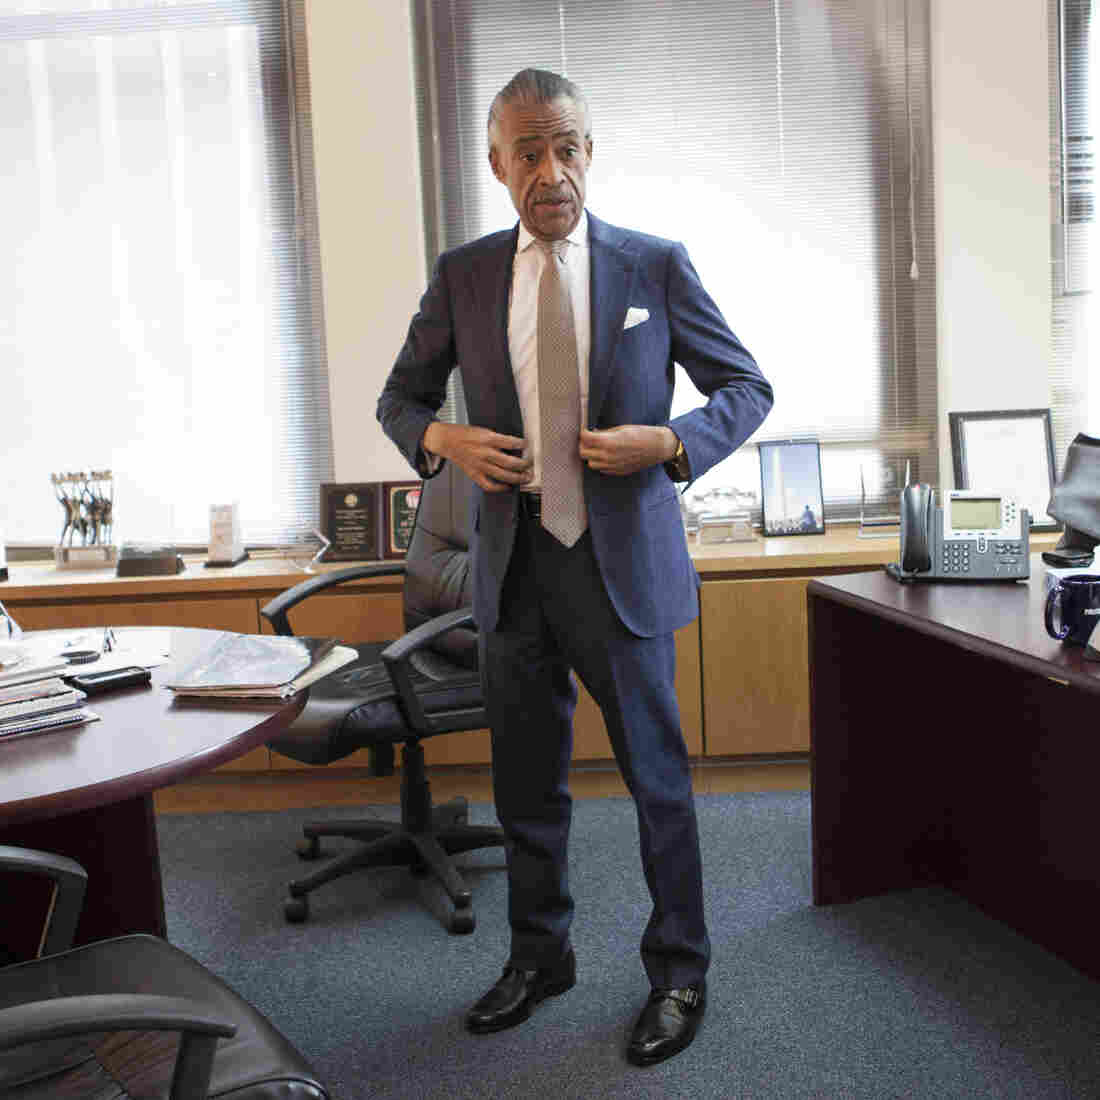 Rev. Al Sharpton, founder and president of National Action Network (NAN), prepares to leave its corporate office for the WWRL radio station in New York, January 11.